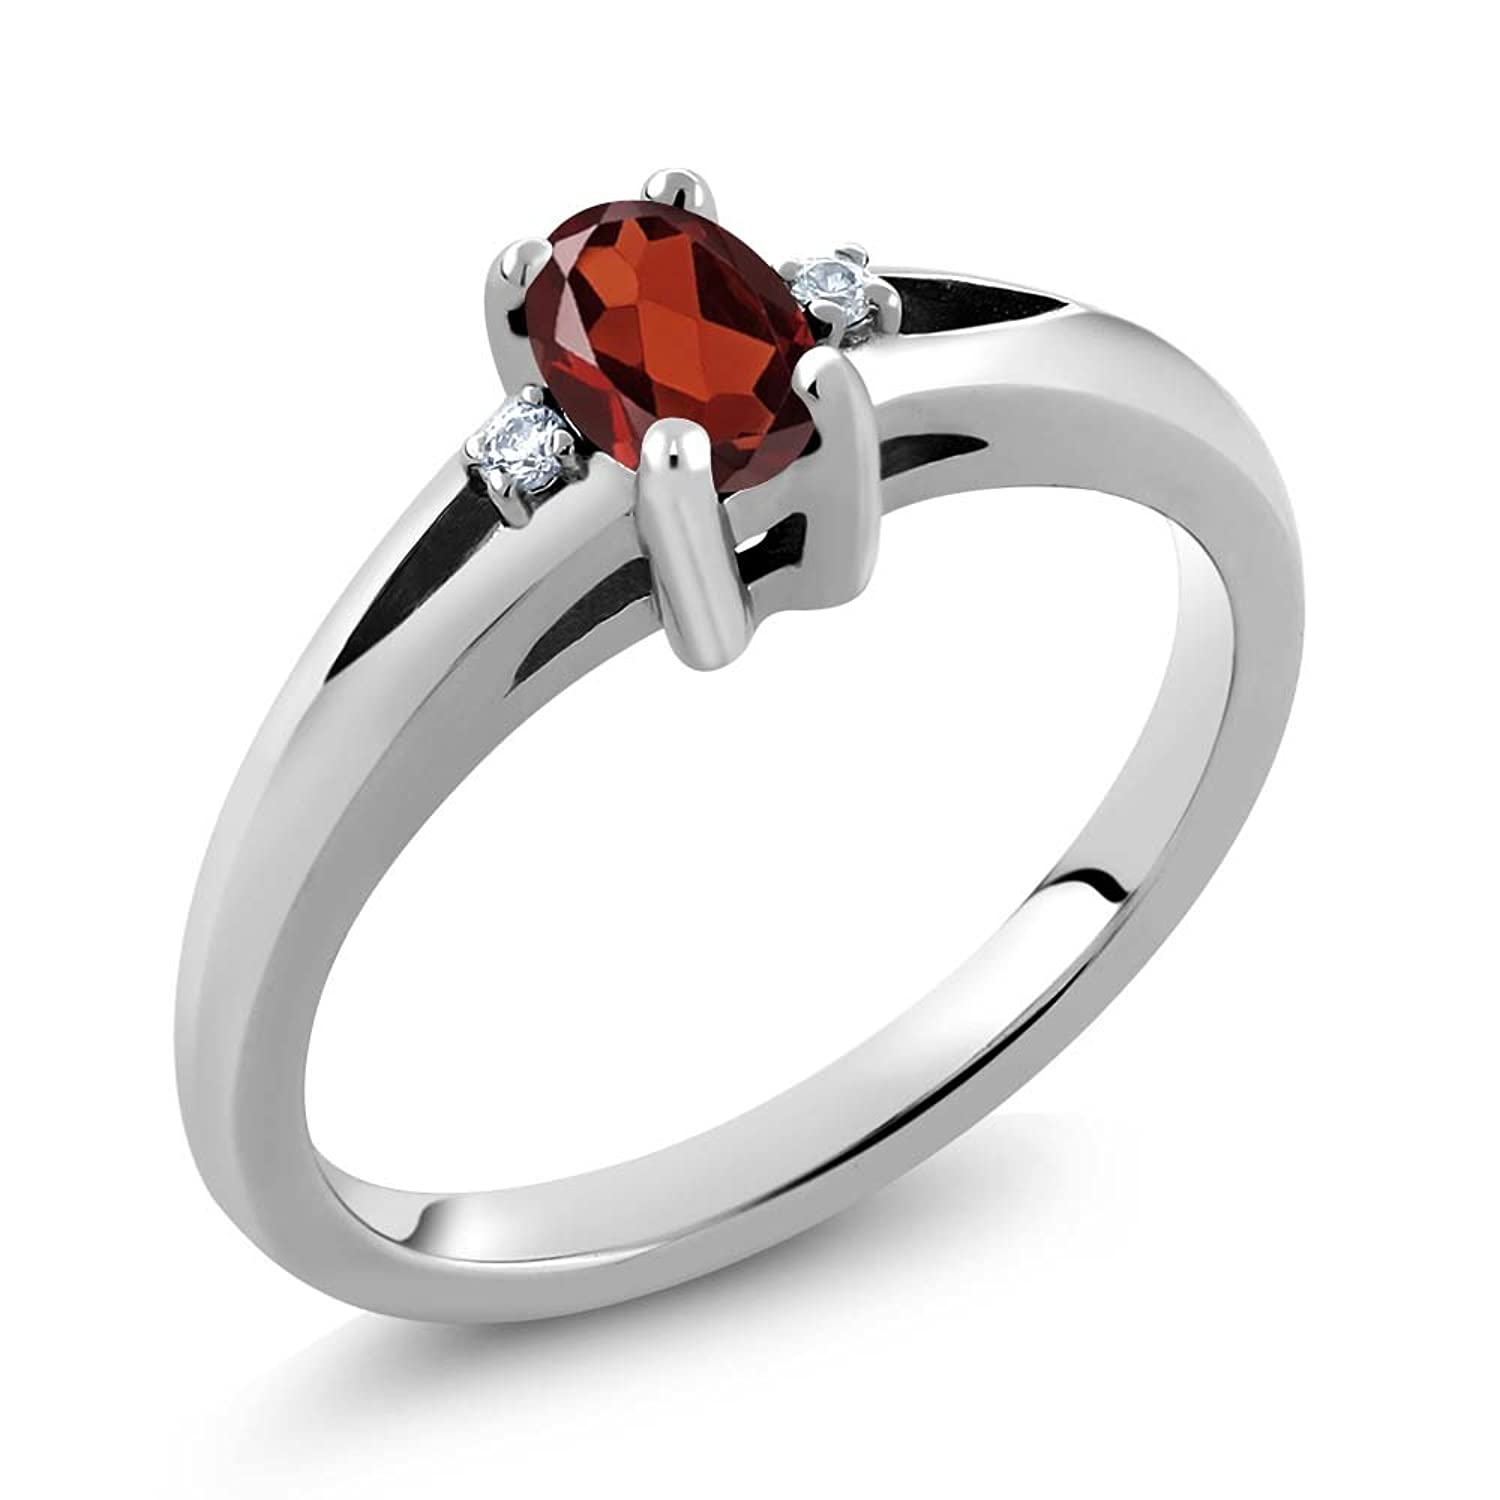 0.58 Ct Oval Red Garnet 925 Sterling Silver Ring (Available in size 5,6,7,8,9)